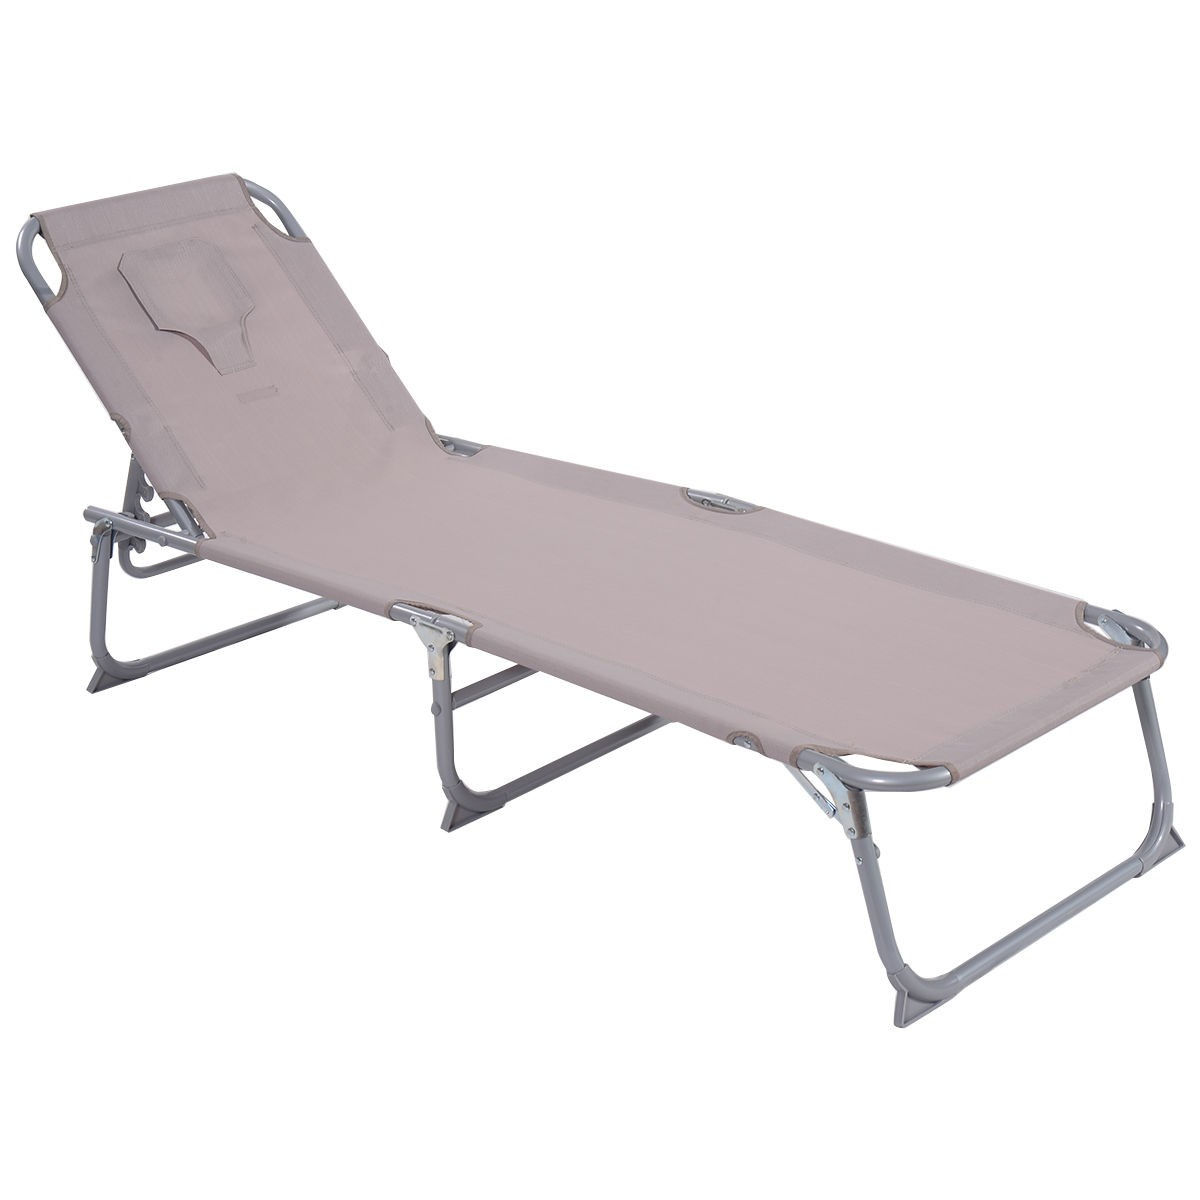 Adjustable Pool Chaise Lounge Chair Recliner Beach Outdoor